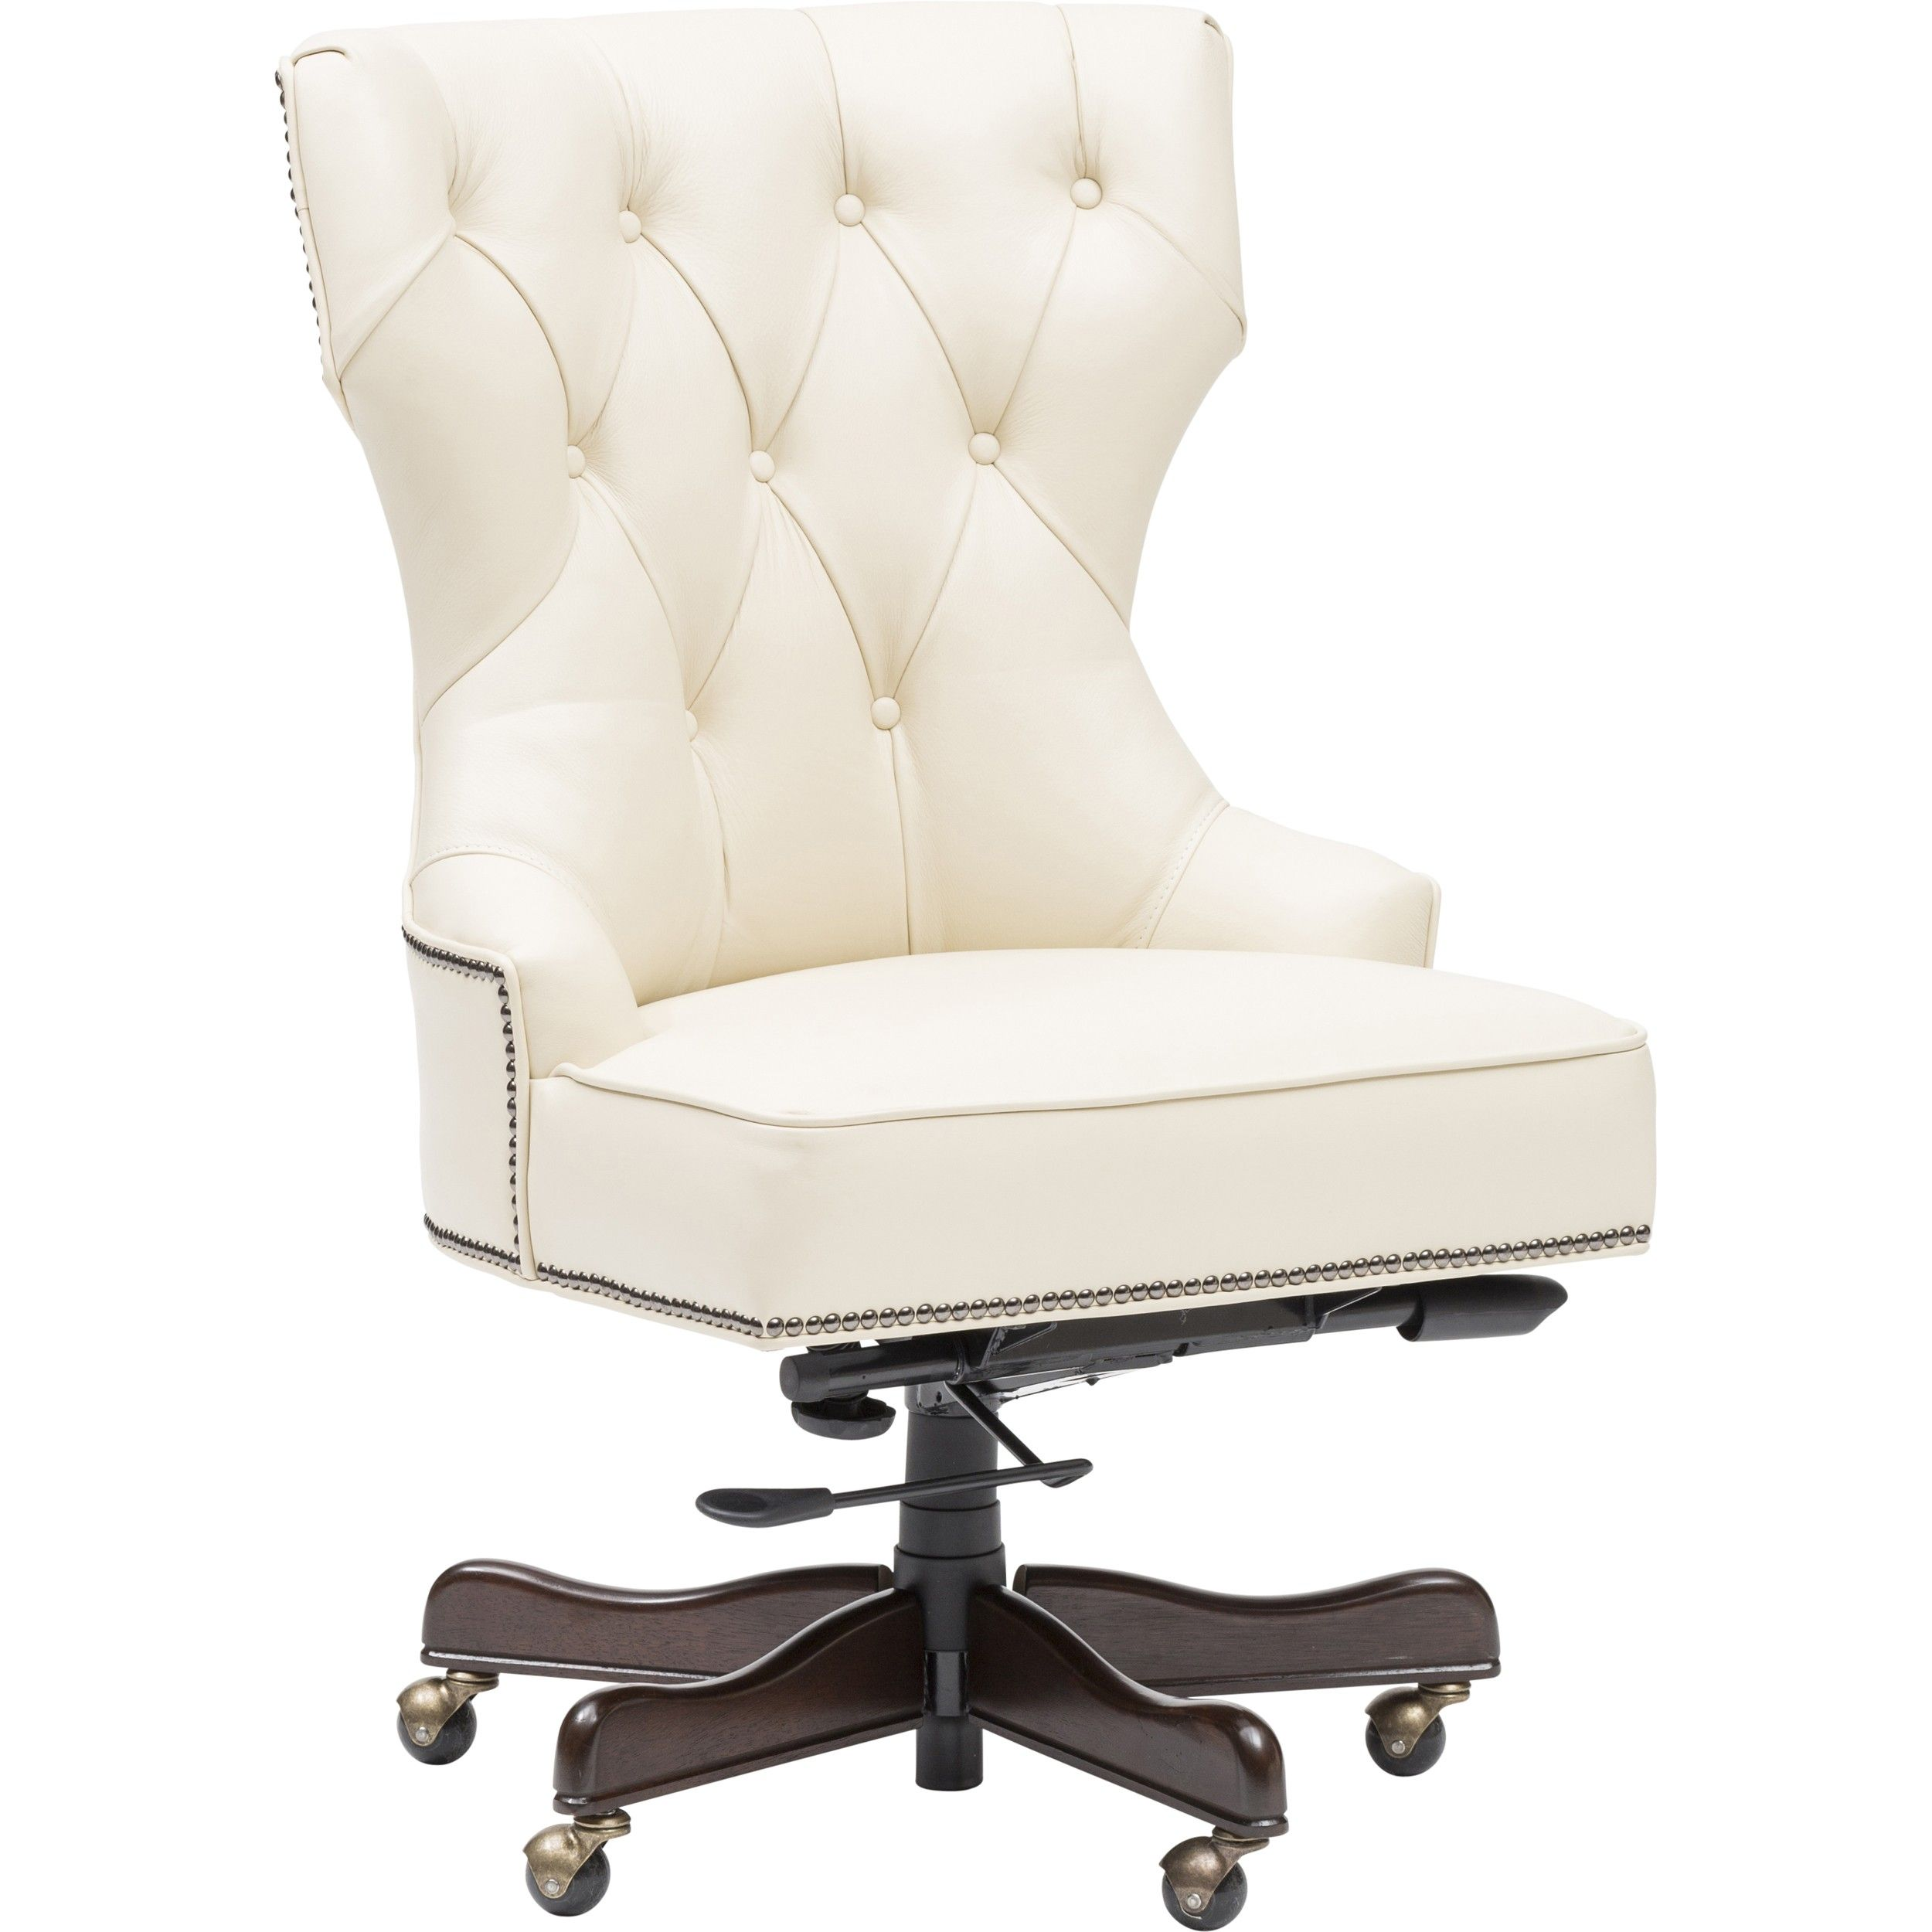 Executive Tufted Leather Chair 749 00 White Officeleather